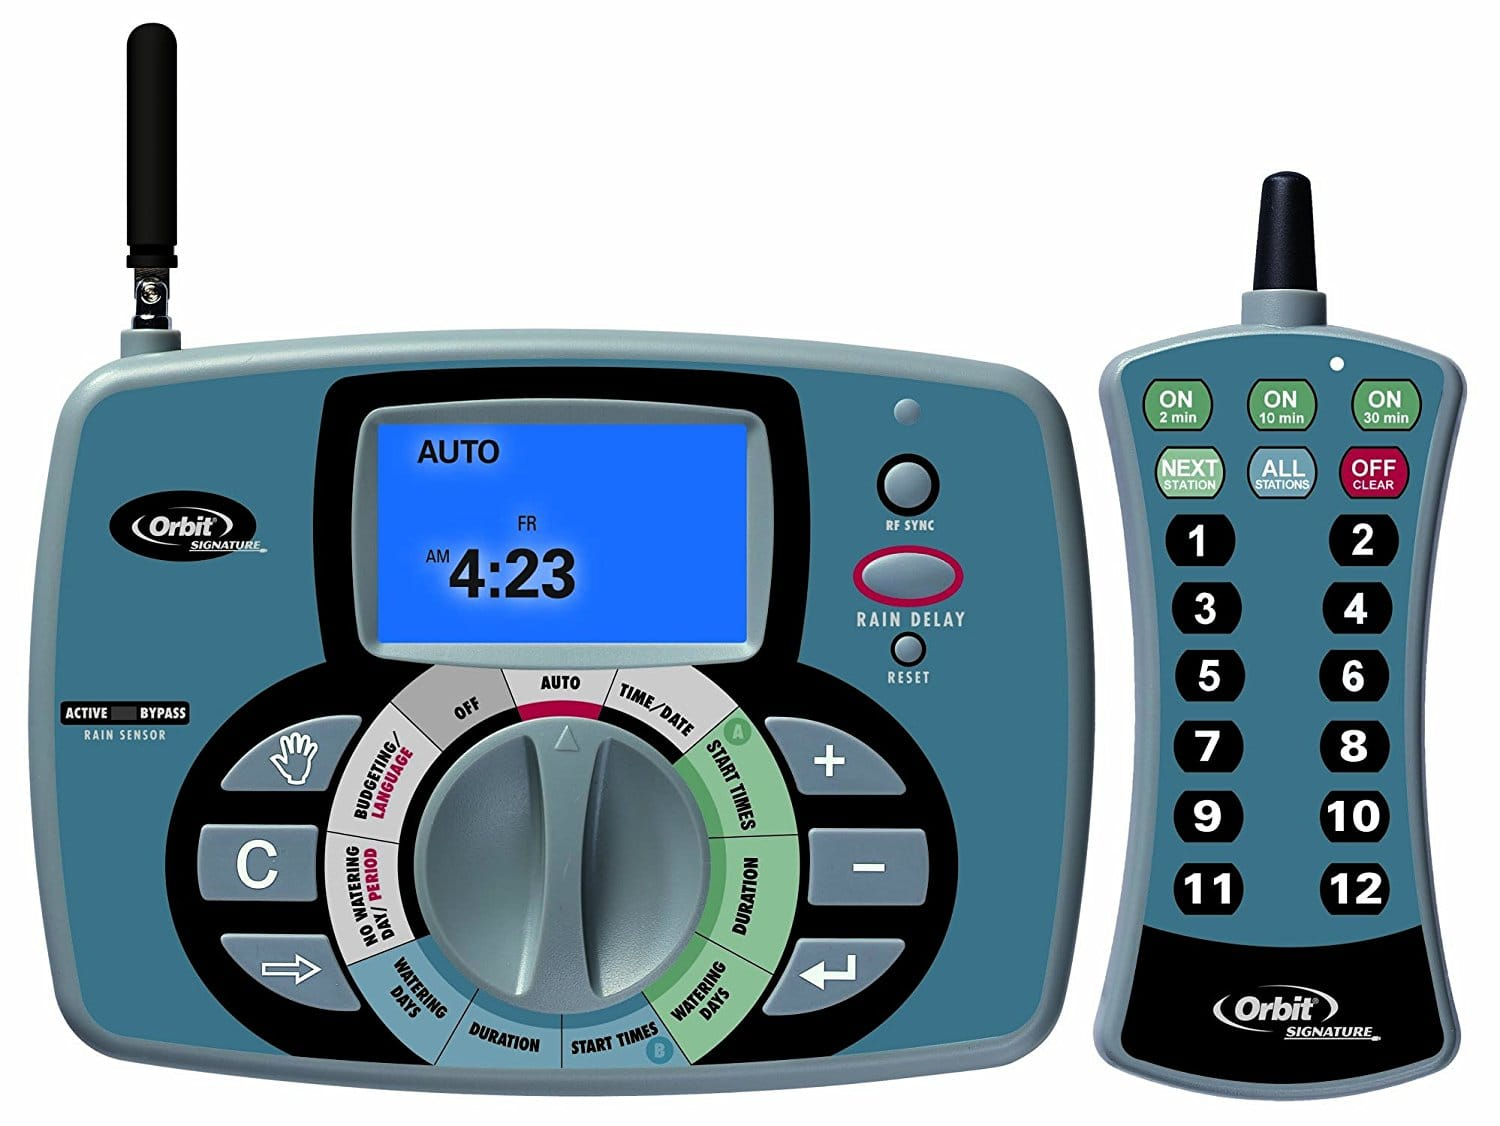 Orbit 12-Station Remote Control Sprinkler System Timer for $20 AC + Free Shipping